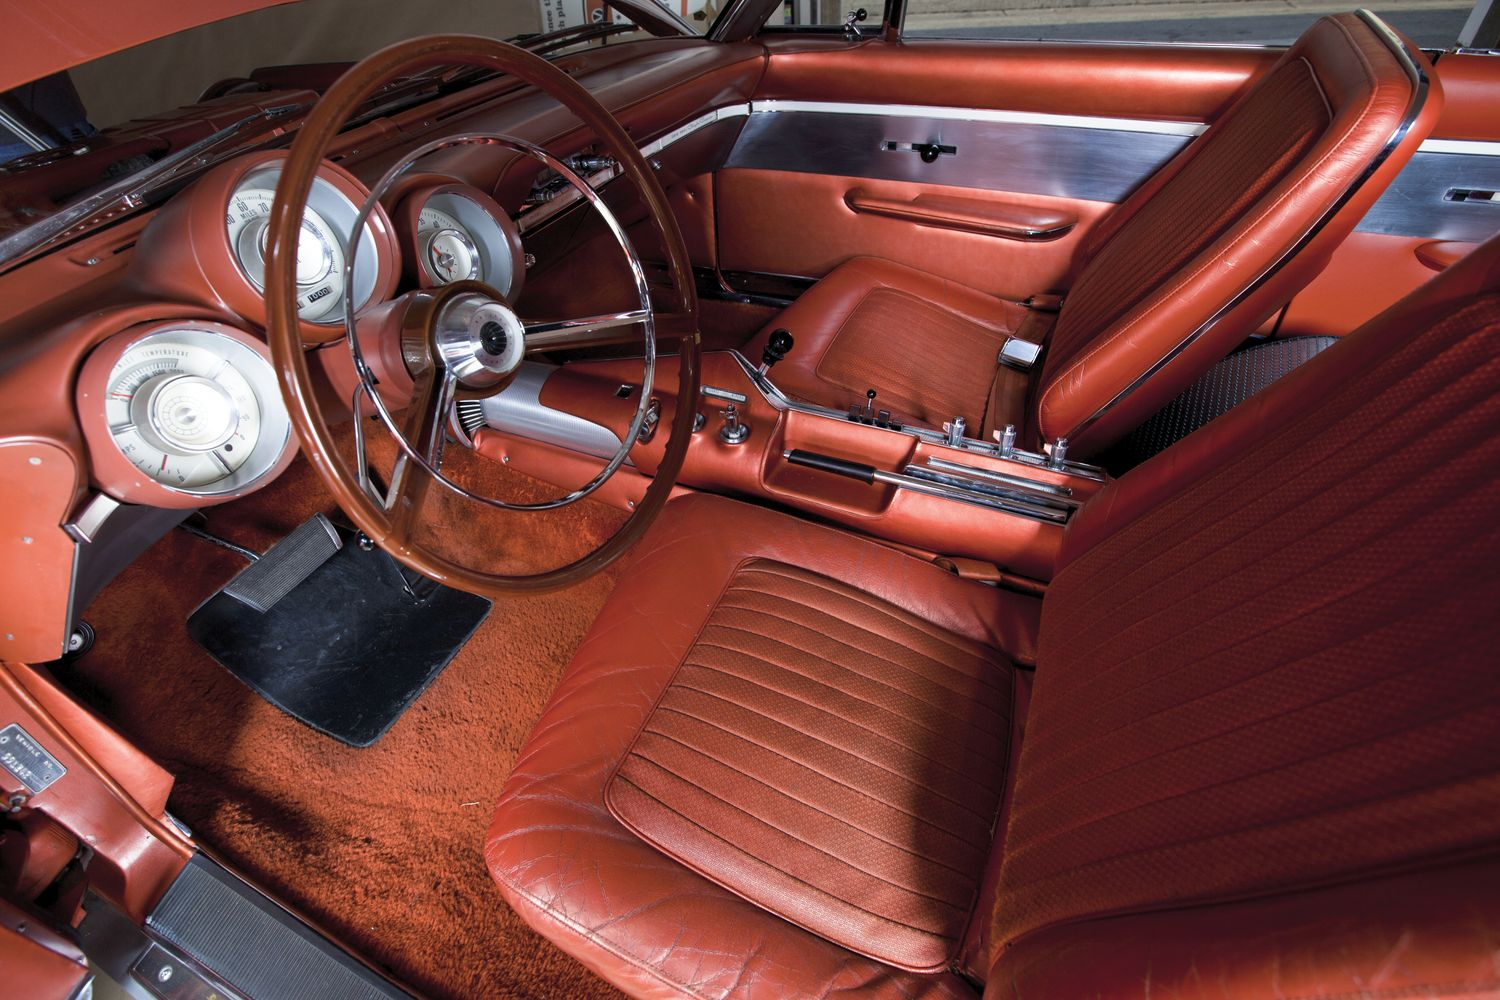 The interior of the Chrysler gas turbine was made to be familiar with typical American drivers of the sixties. (Picture courtesy Hemmings).